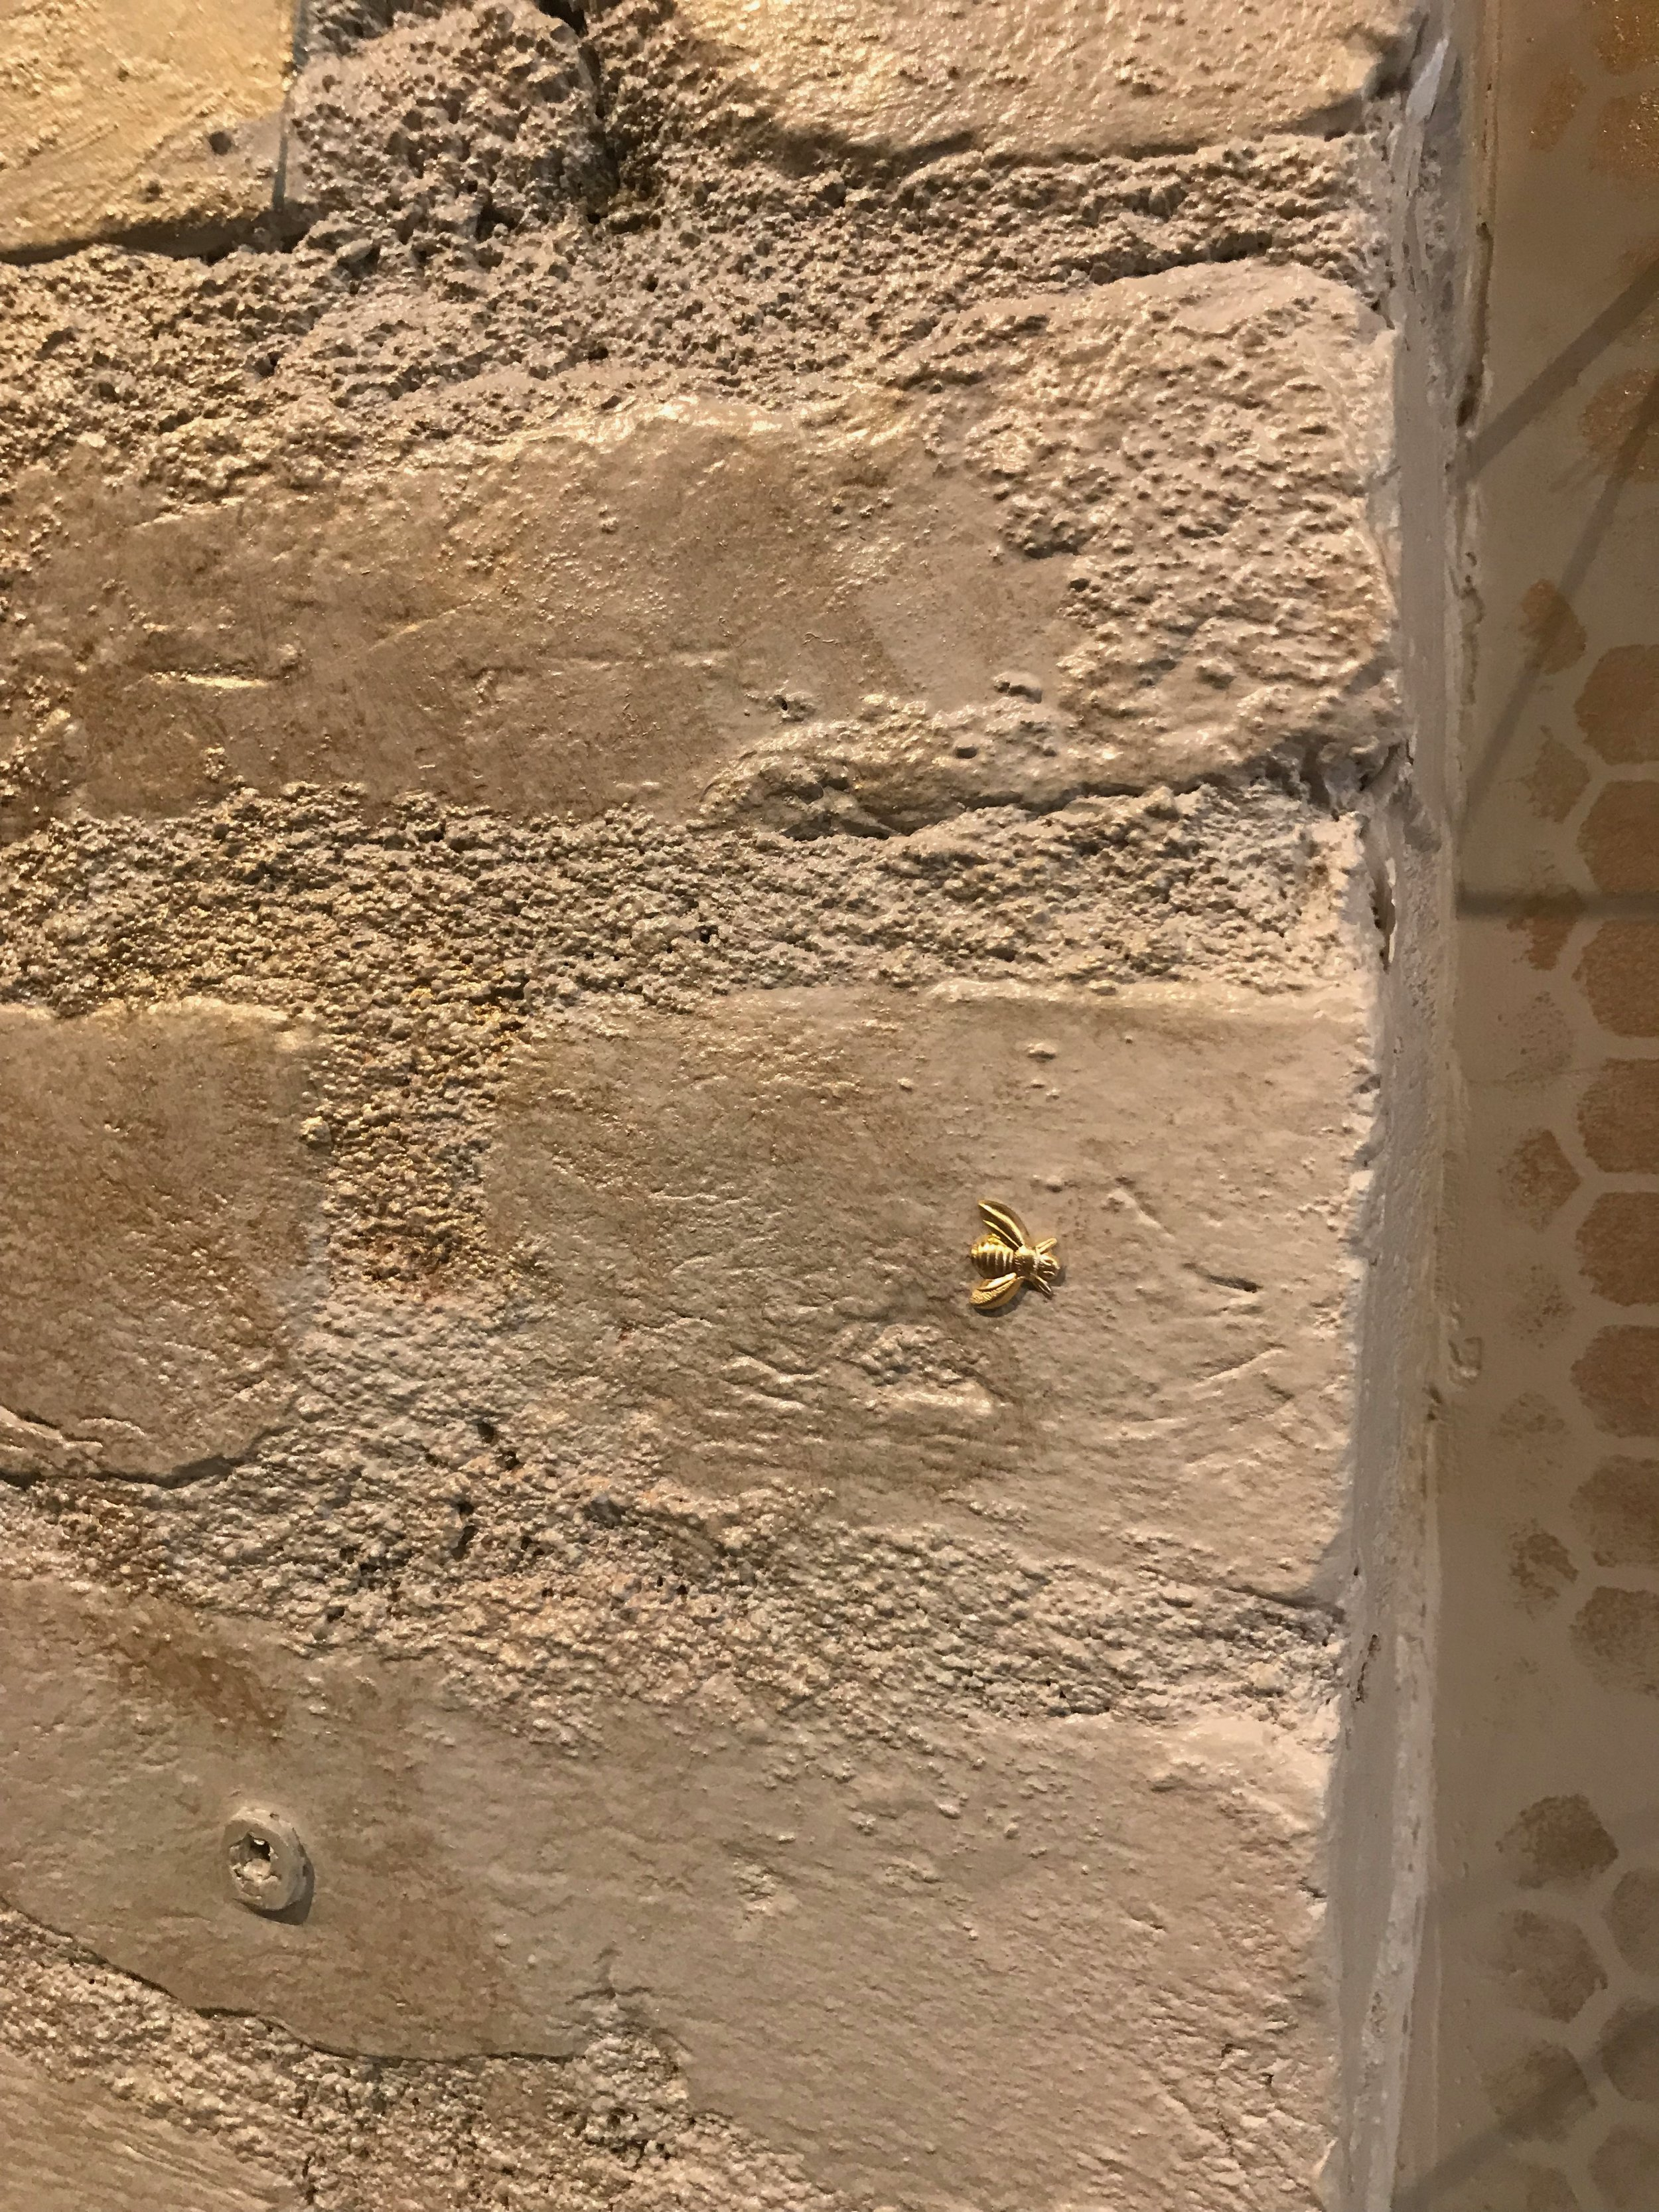 Hidden treasures, like these tiny gold bees embedded in the wall, reward visitors for taking a moment to appreciate life's small joys.